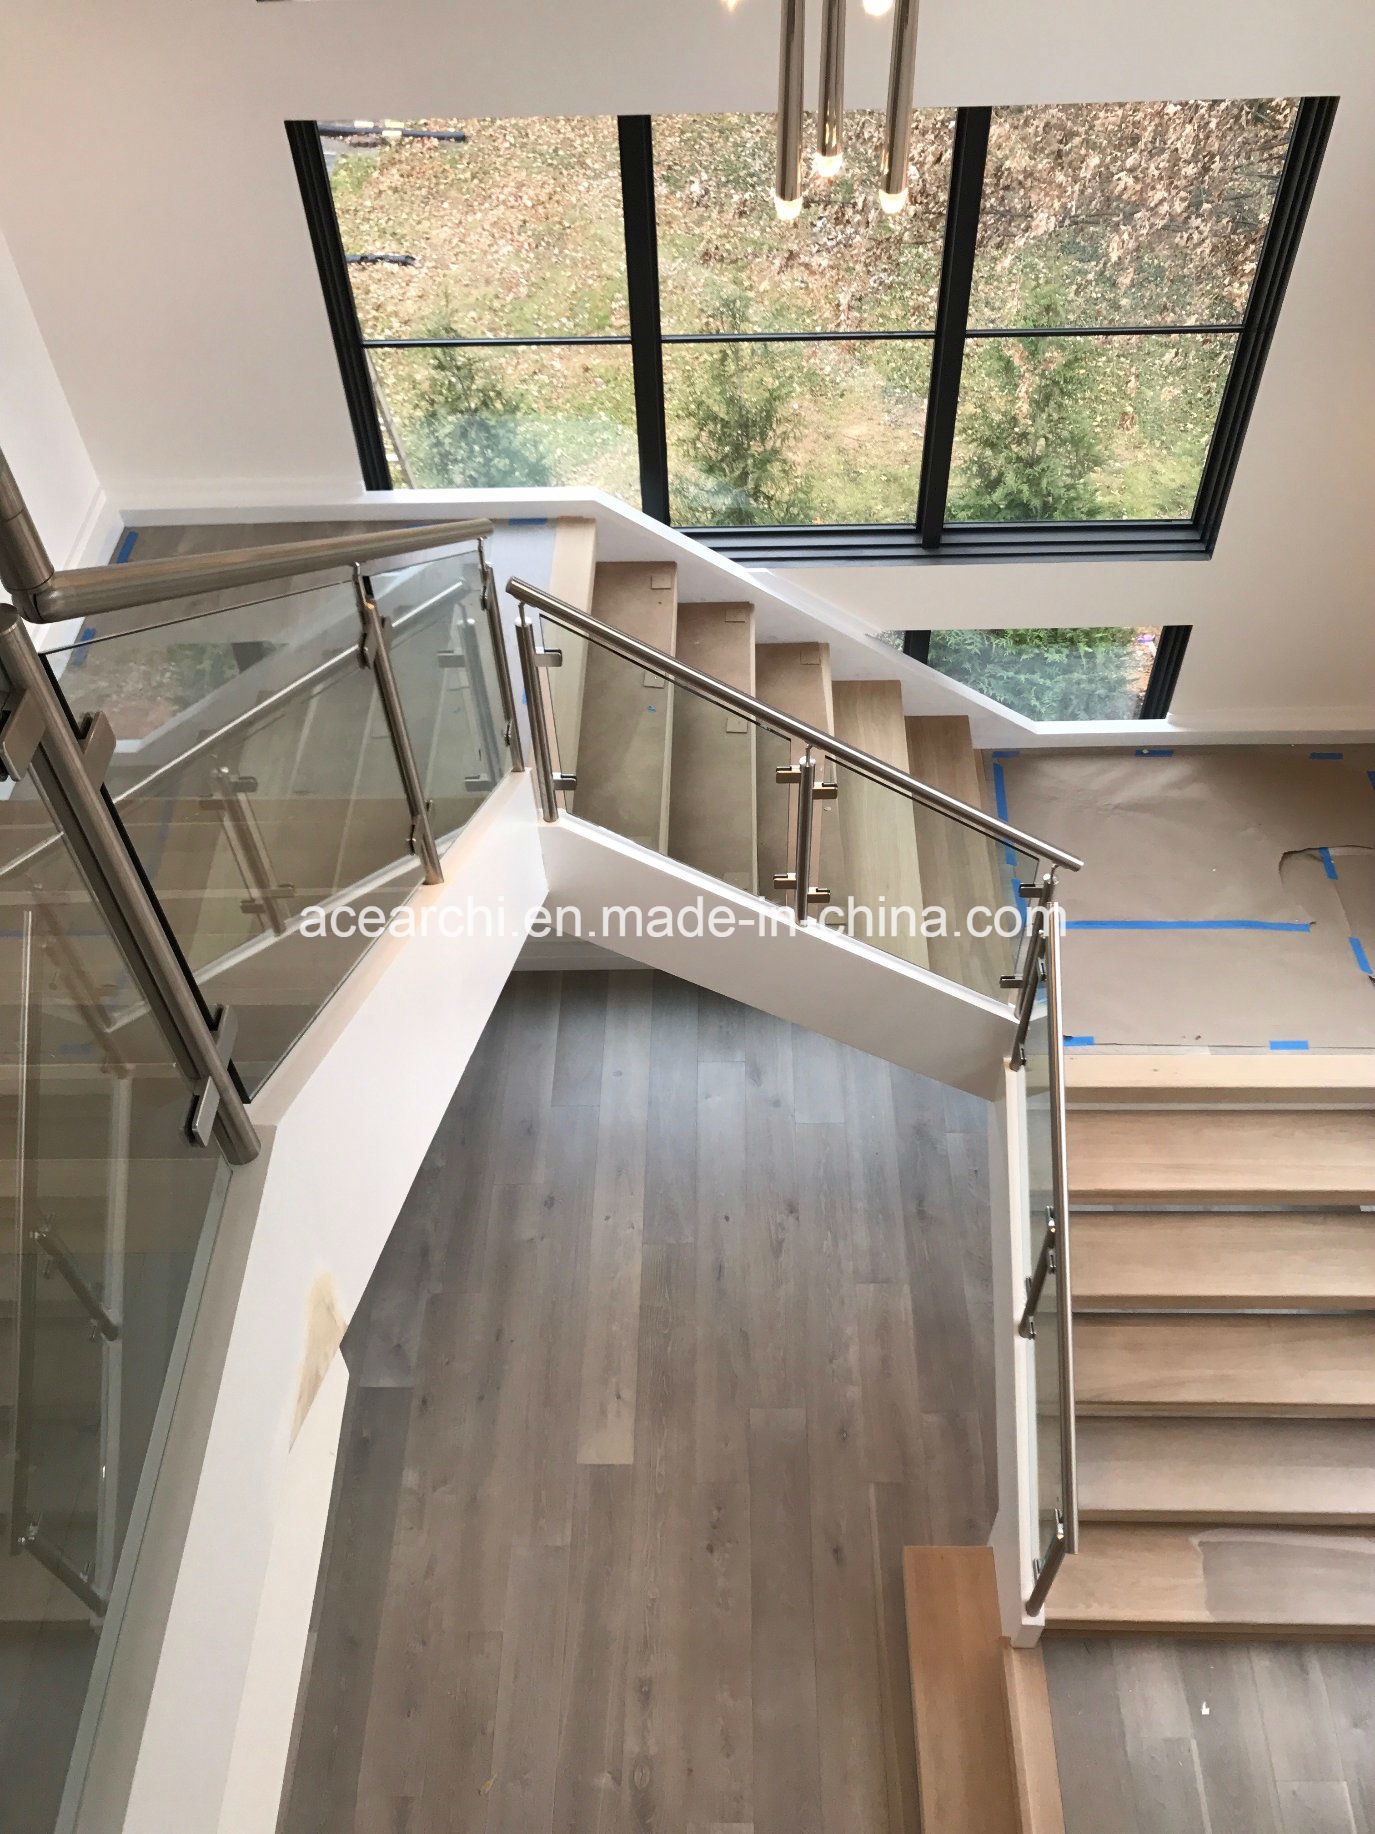 Interior Stainless Steel Tempered Clear Glass Stair Railing Handrail